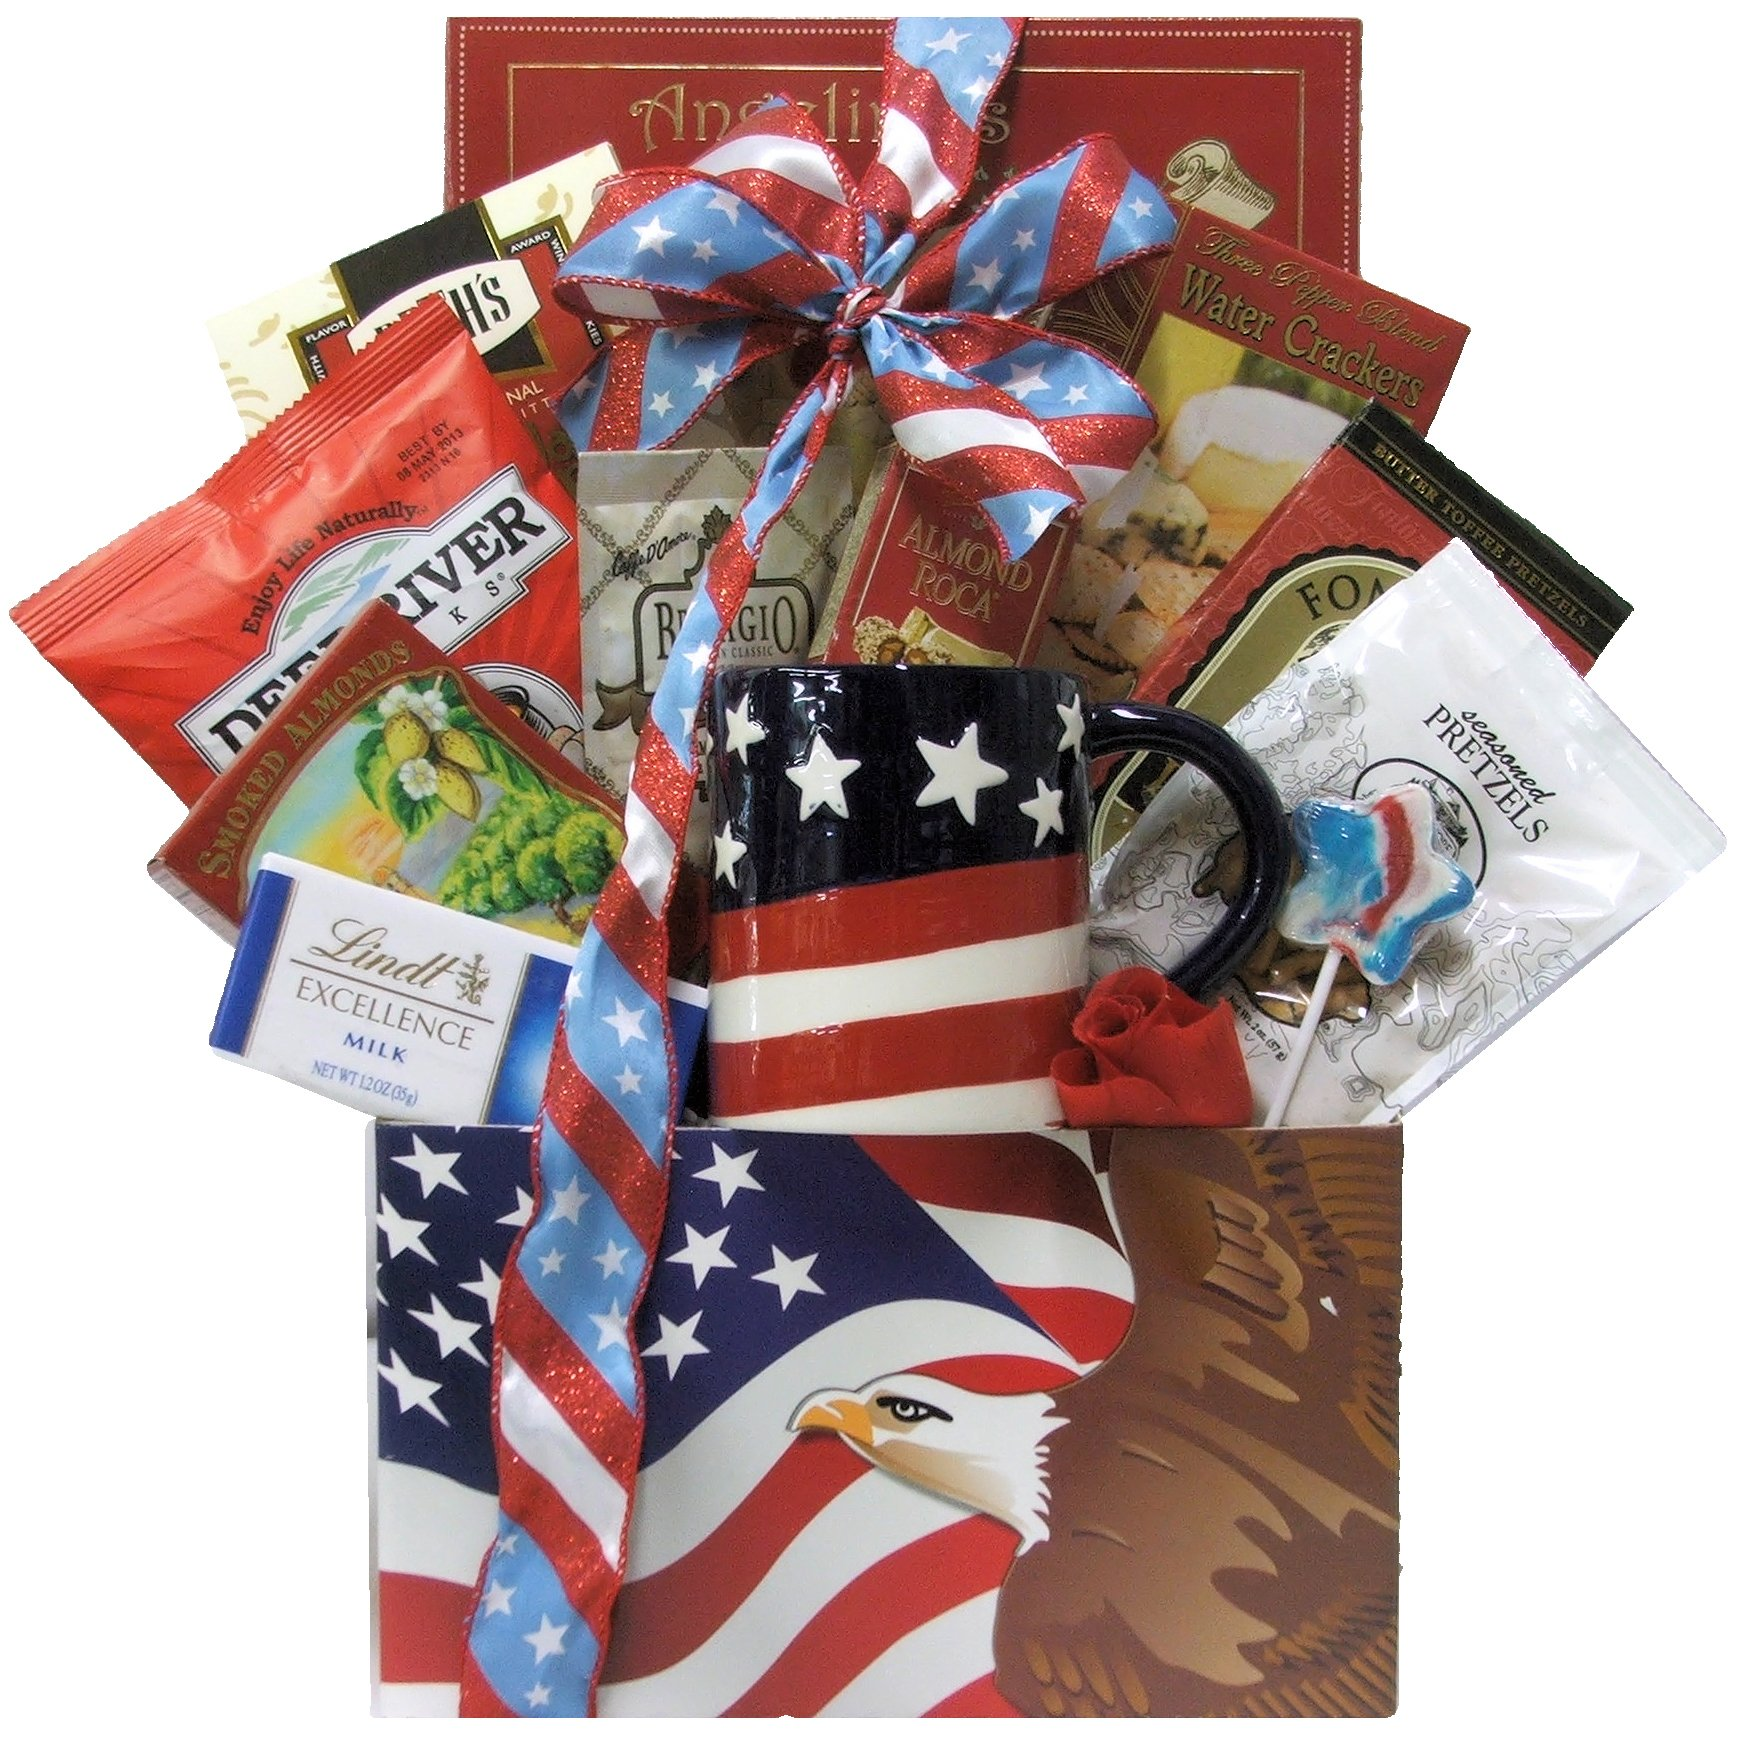 GreatArrivals Gift Baskets Enduring Freedom, Welcome Home Solider or Patriotic by GreatArrivals Gift Baskets (Image #1)